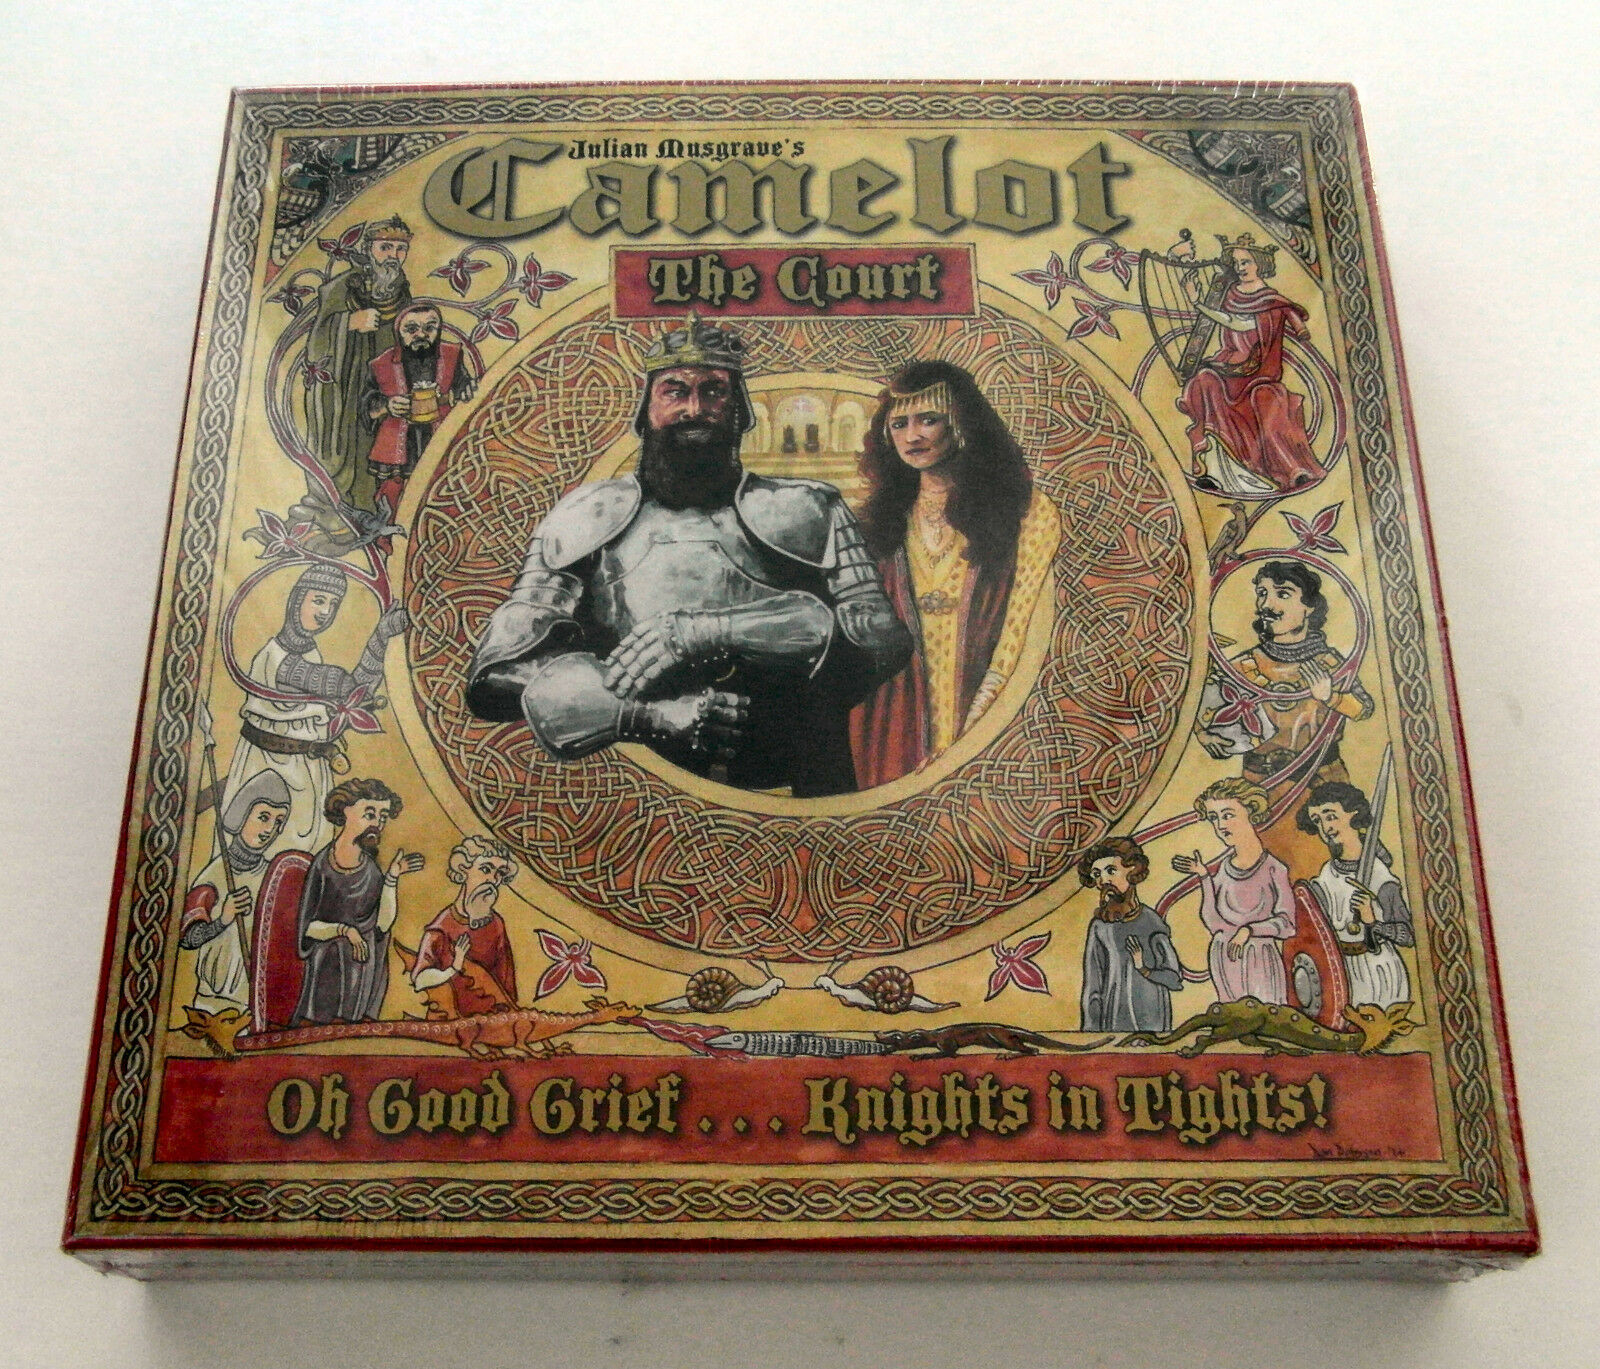 Camelot: The Court - Wotan Games - 2014